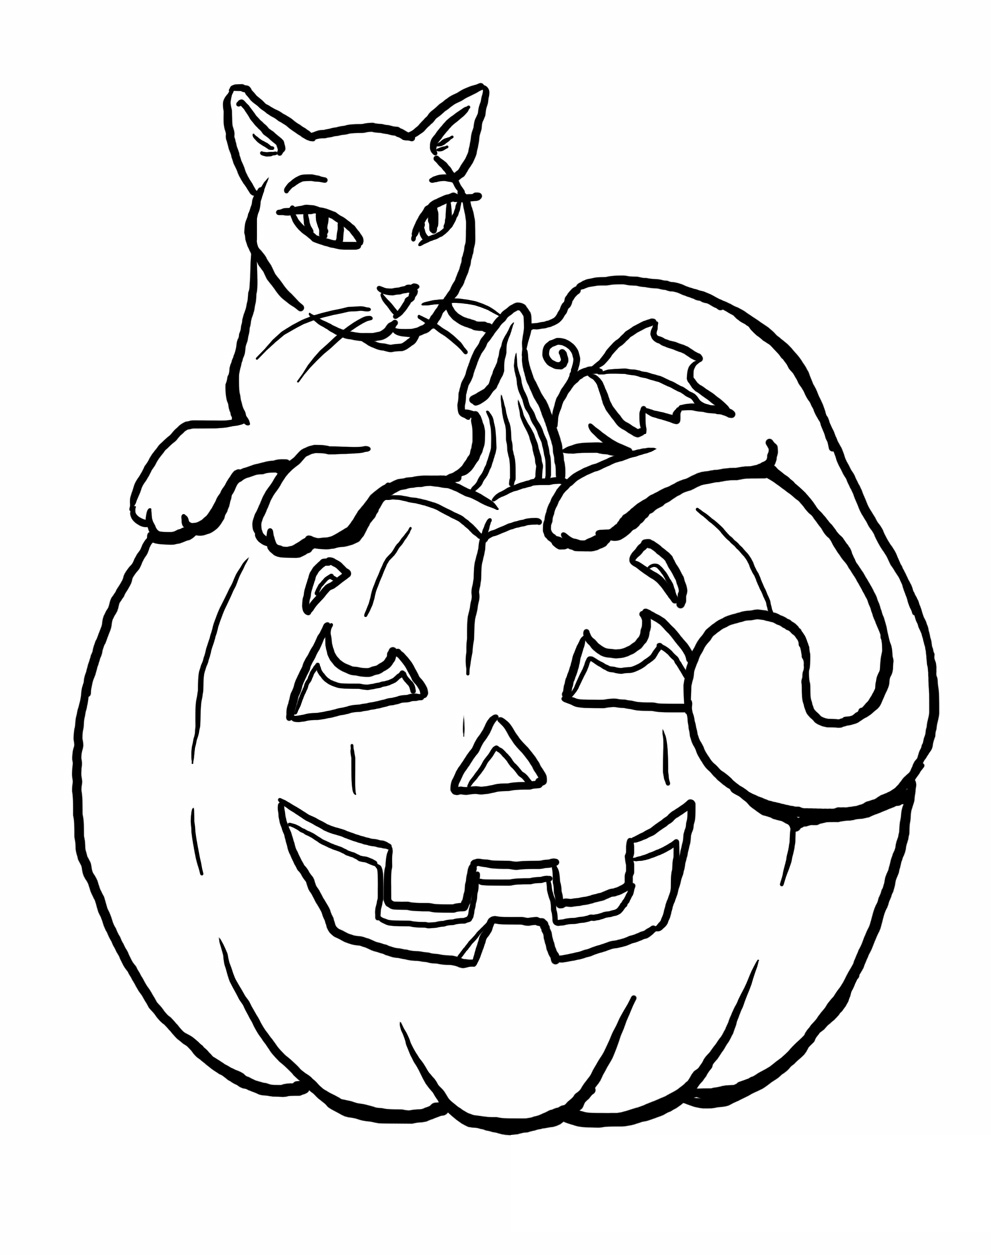 halloween cat coloring page cat face drawing for halloween at getdrawings free download page coloring halloween cat